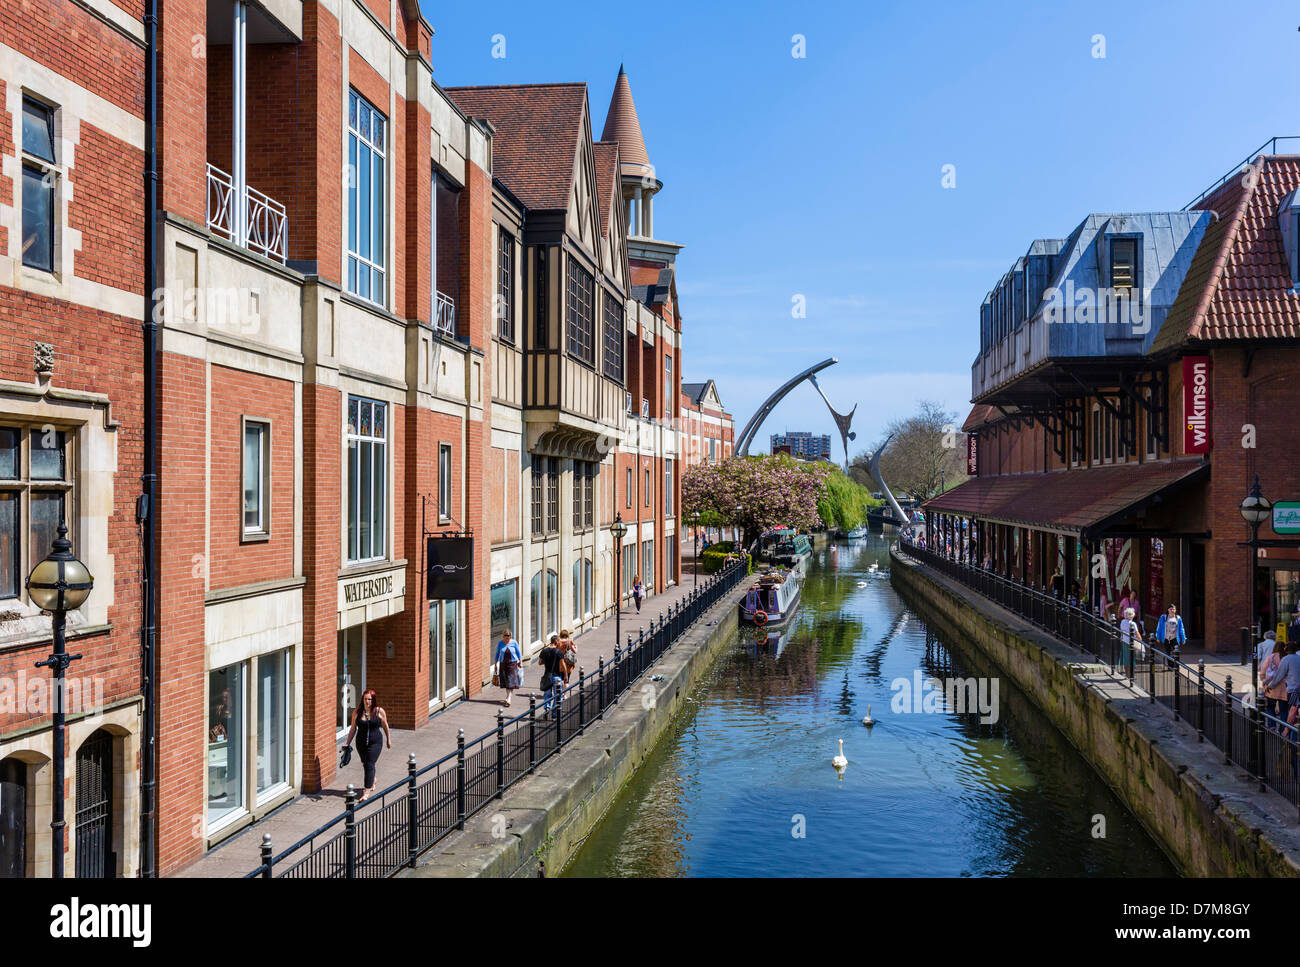 The River Witham in the city centre with the Waterside Shopping Centre to the left, Lincoln, Lincolnshire, England, - Stock Image